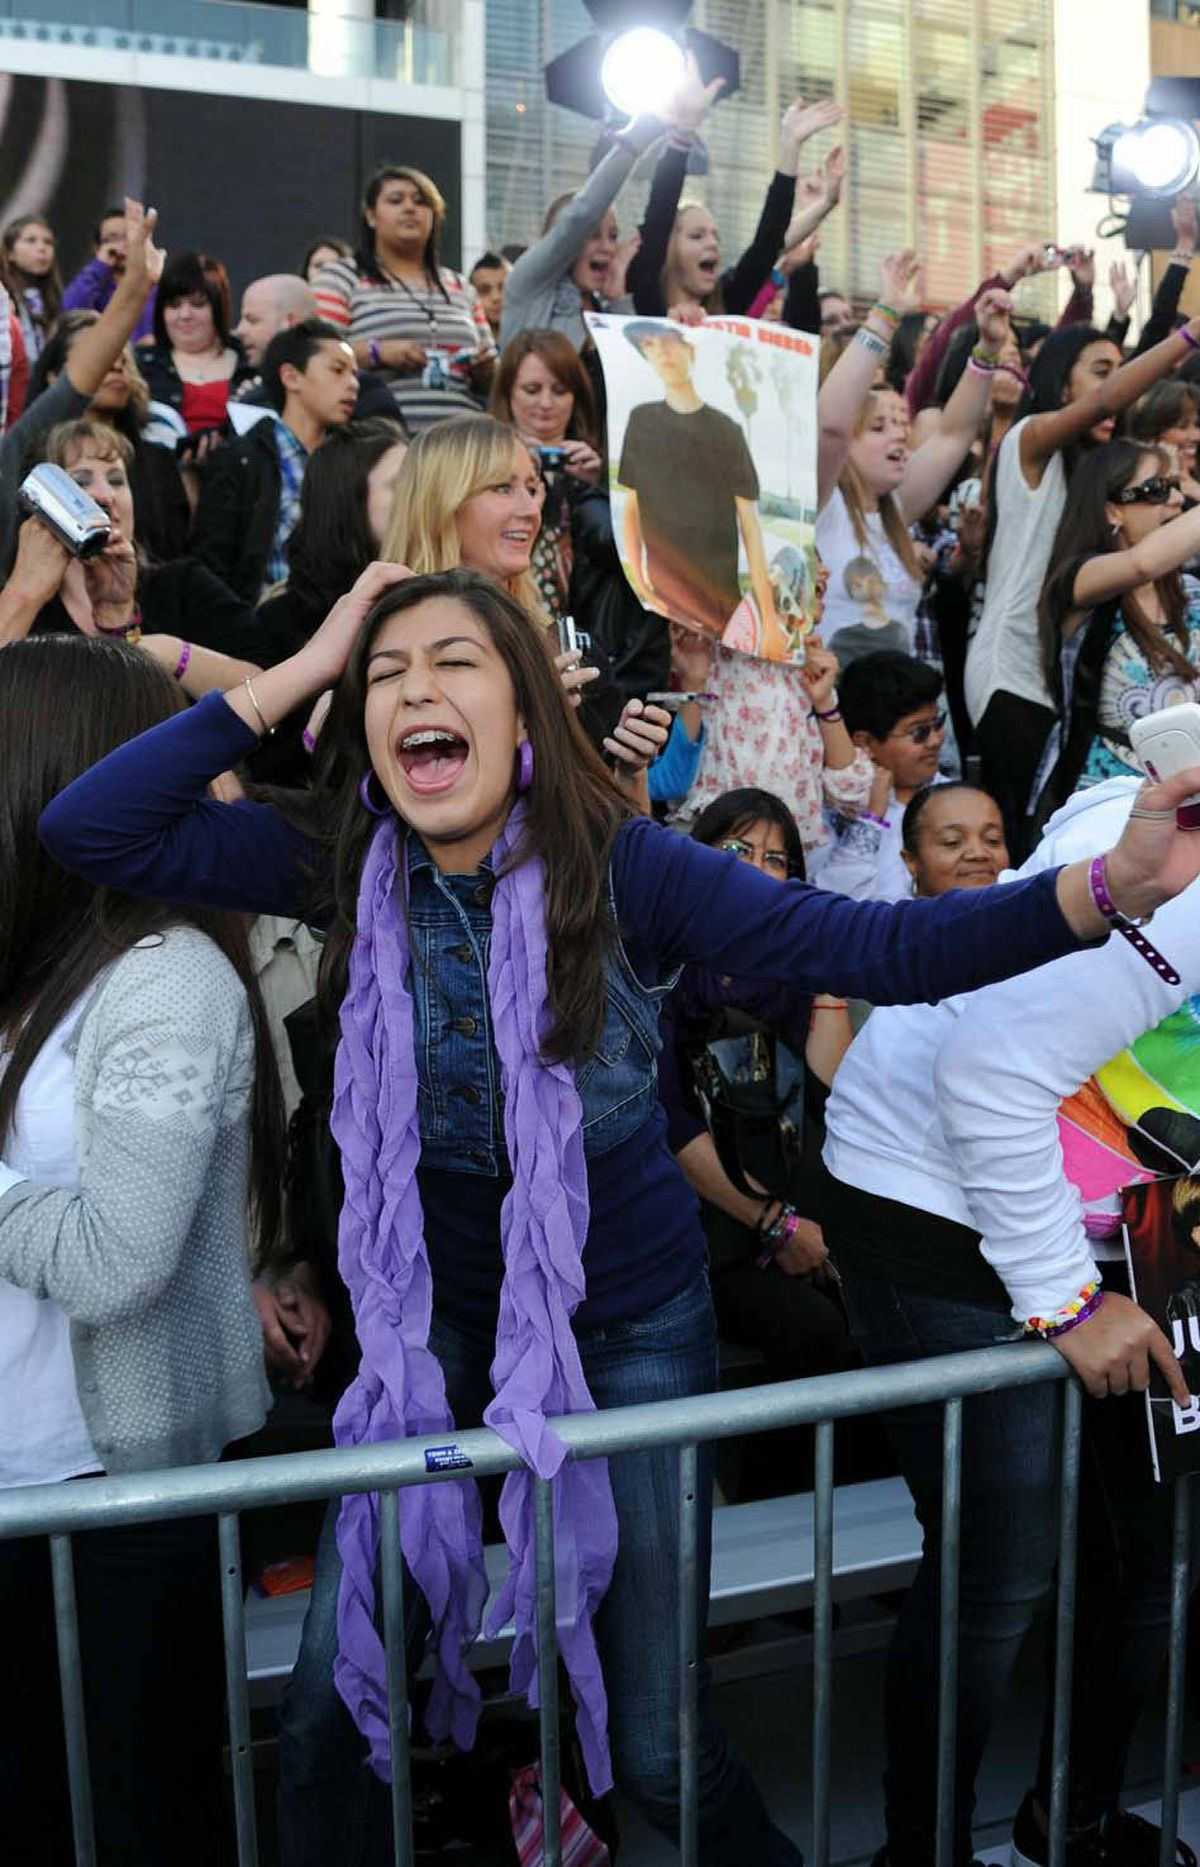 """February brought us the release of the documentary """"Justin Bieber: Never Say Never"""" and this extraordinary reaction from one of his fans at the movie's premiere in Los Angeles on Feb. 8."""